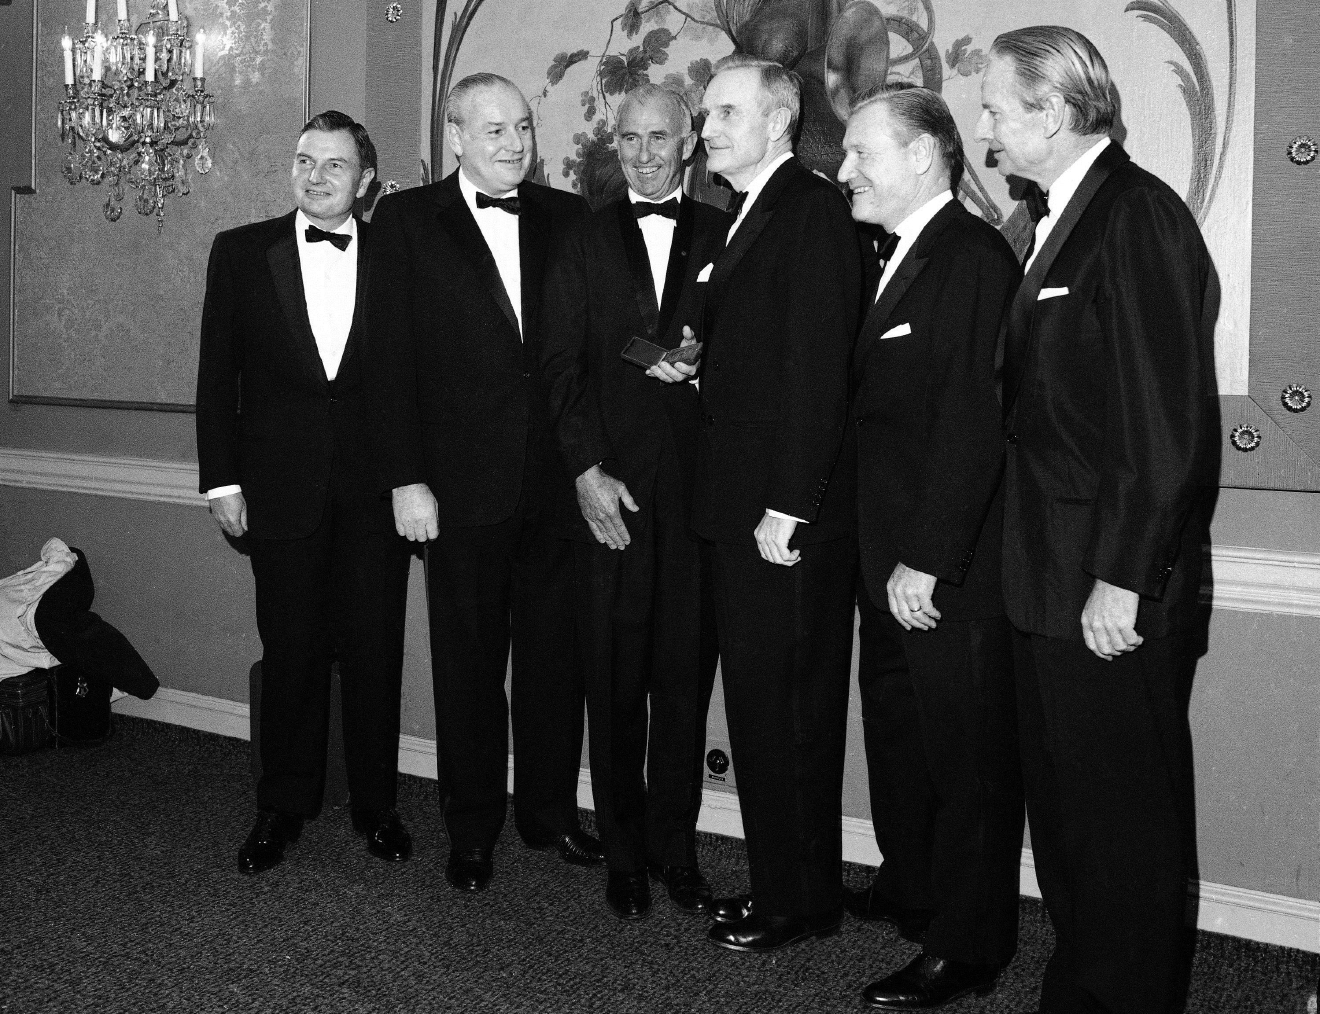 FILE - In this  Nov. 28, 1967 file photo, the five Rockefeller Brothers display smiles in New York as they gather to receive gold medals from the National Institute of social sciences. From left are: David Rockefeller, President of the Chase Manhattan Bank; Winthrop Rockefeller; Governor of Arkansas; Frank Pace, President of the NISS; John D. Rockefeller 3rd, Chairman of the Rockefeller Foundation; Nelson Rockefeller, Governor of New York; and Laurence Rockefeller, a conservation adviser to President Johnson. The billionaire philanthropist who was the last of his generation in the famously philanthropic Rockefeller family has died. David Rockefeller was 101 years old. (AP Photo, File)